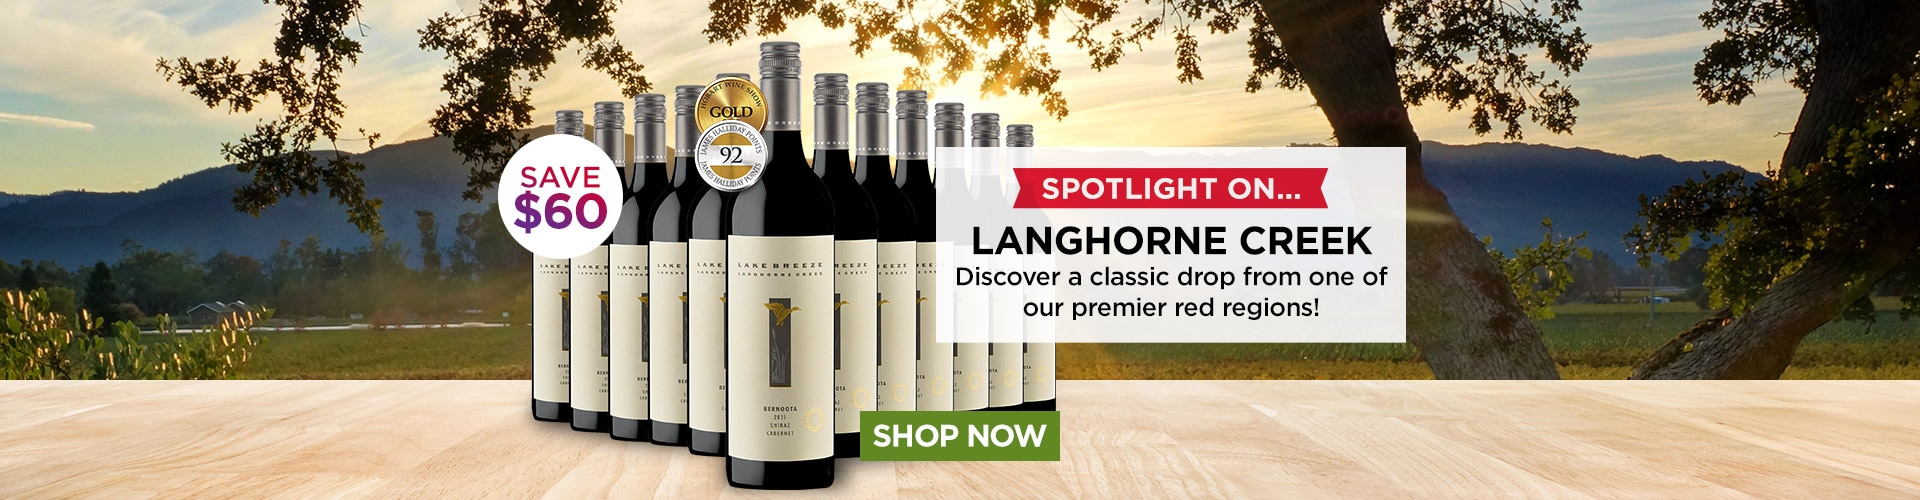 SPOTLIGHT ON... Langhorne Creek. SAVE $60 - SHOP NOW